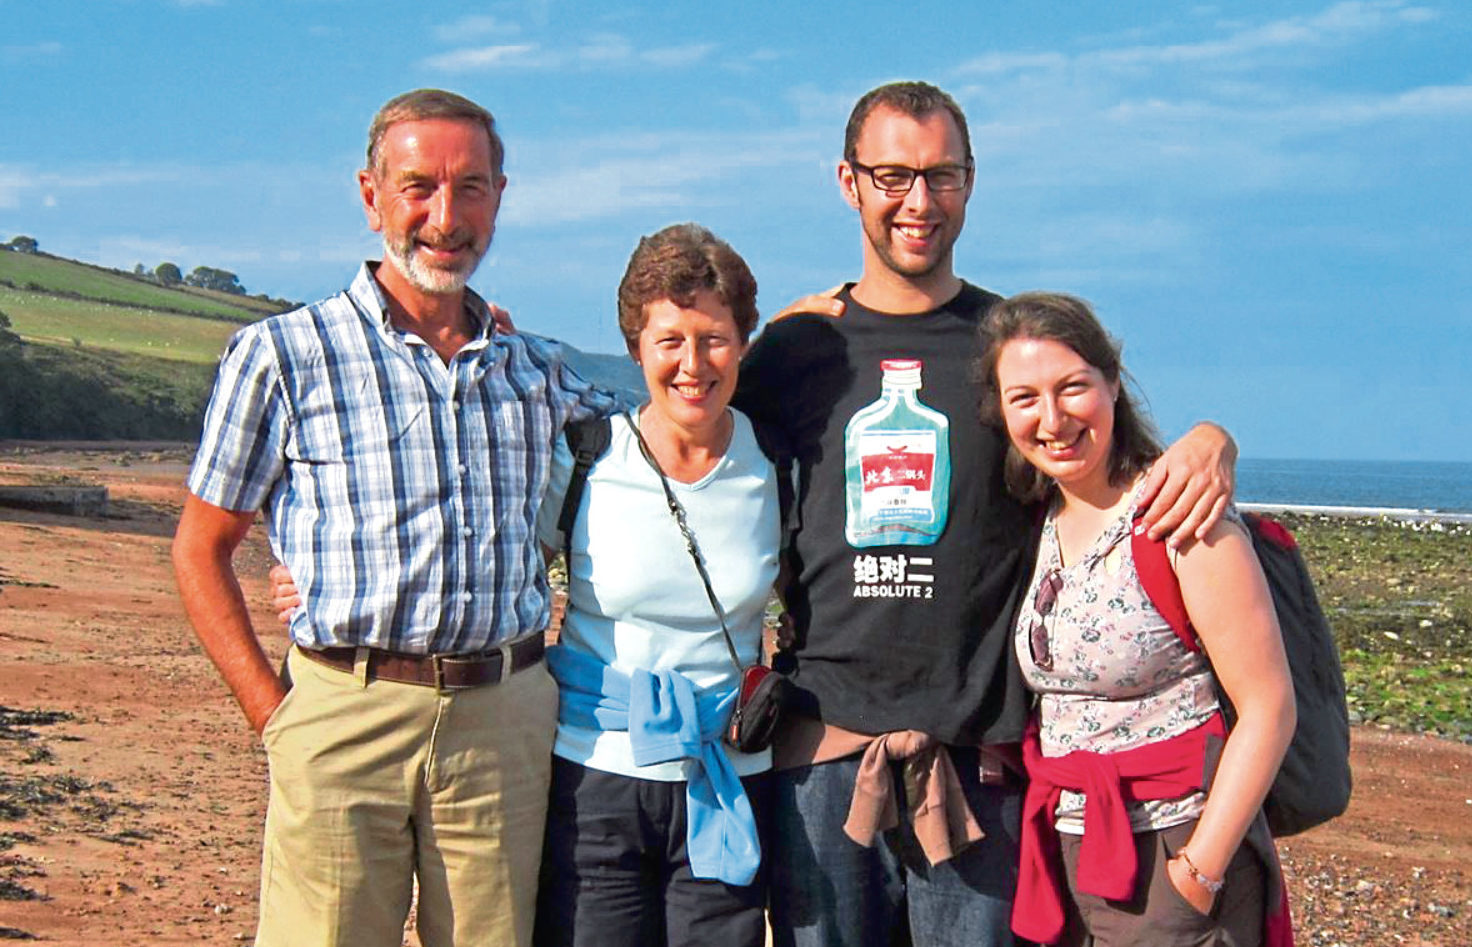 Gordon Thorburn with his wife Janice, son Ross and daughter Karen.